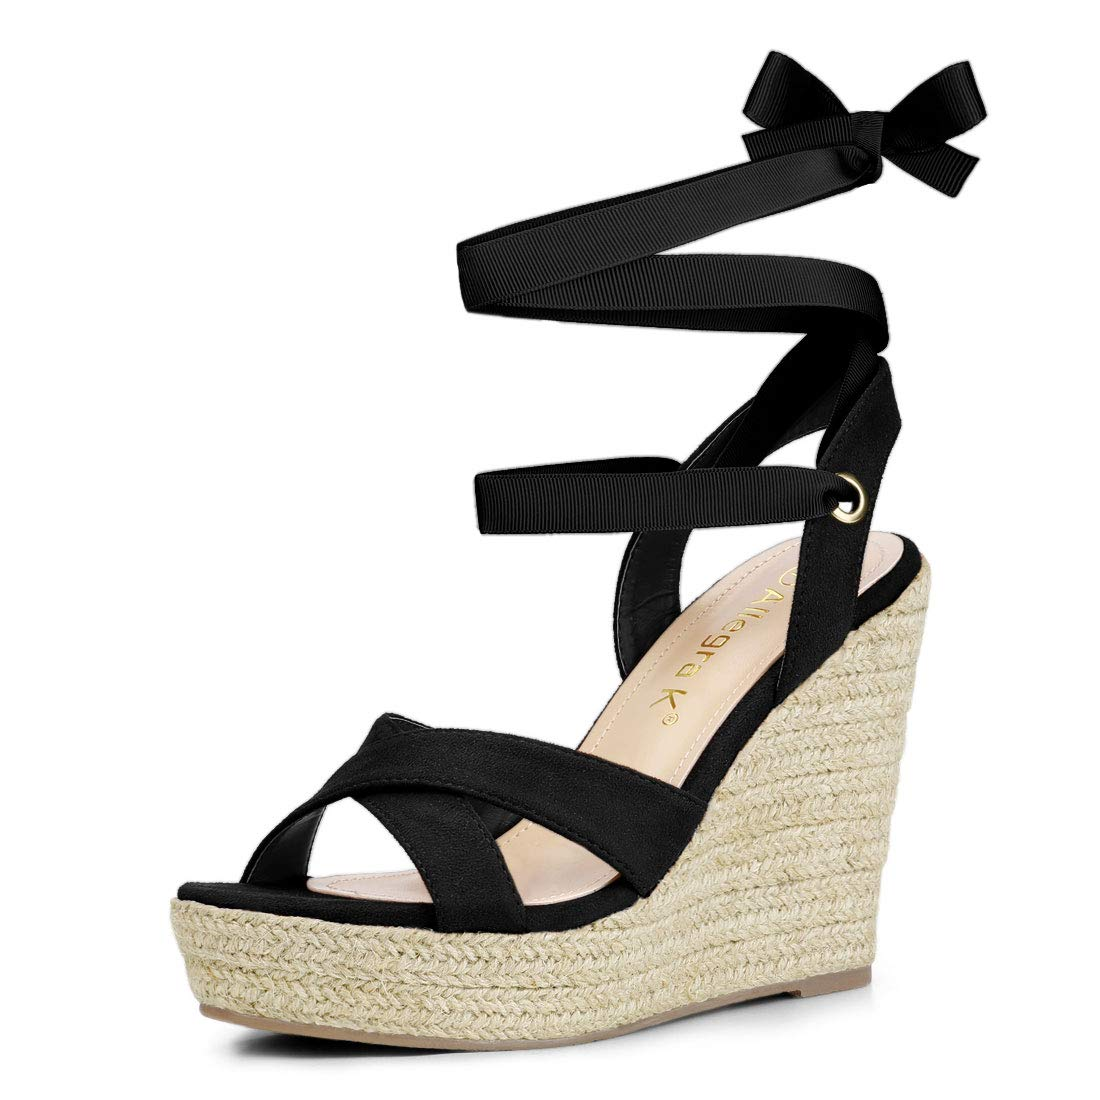 9762698465e Allegra K Women's Espadrille Platform Lace Up Wedges Sandals